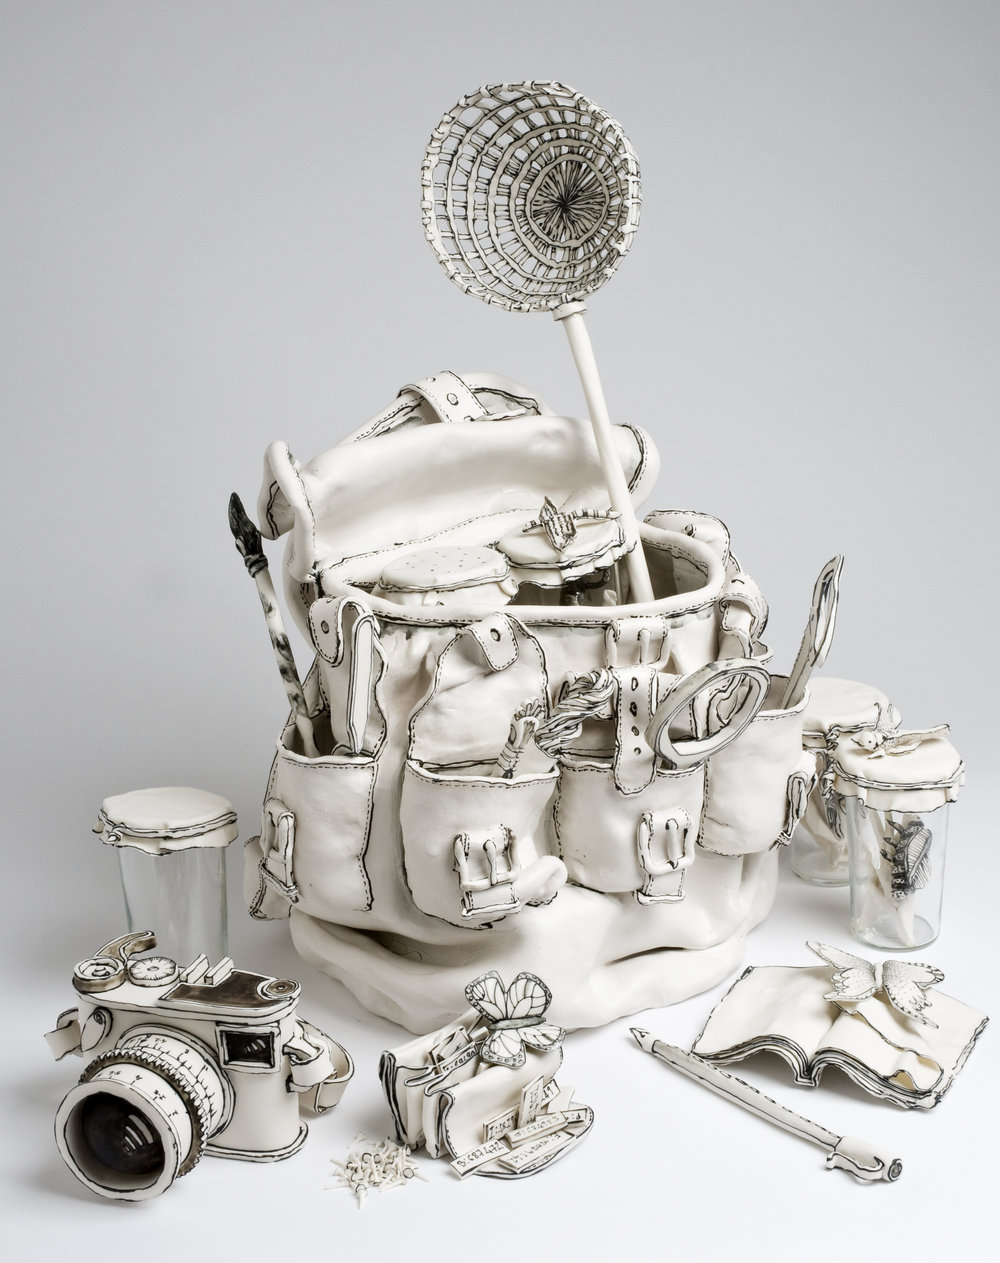 Rummage and Gather KATHARINE MORLING_Cropped.jpg